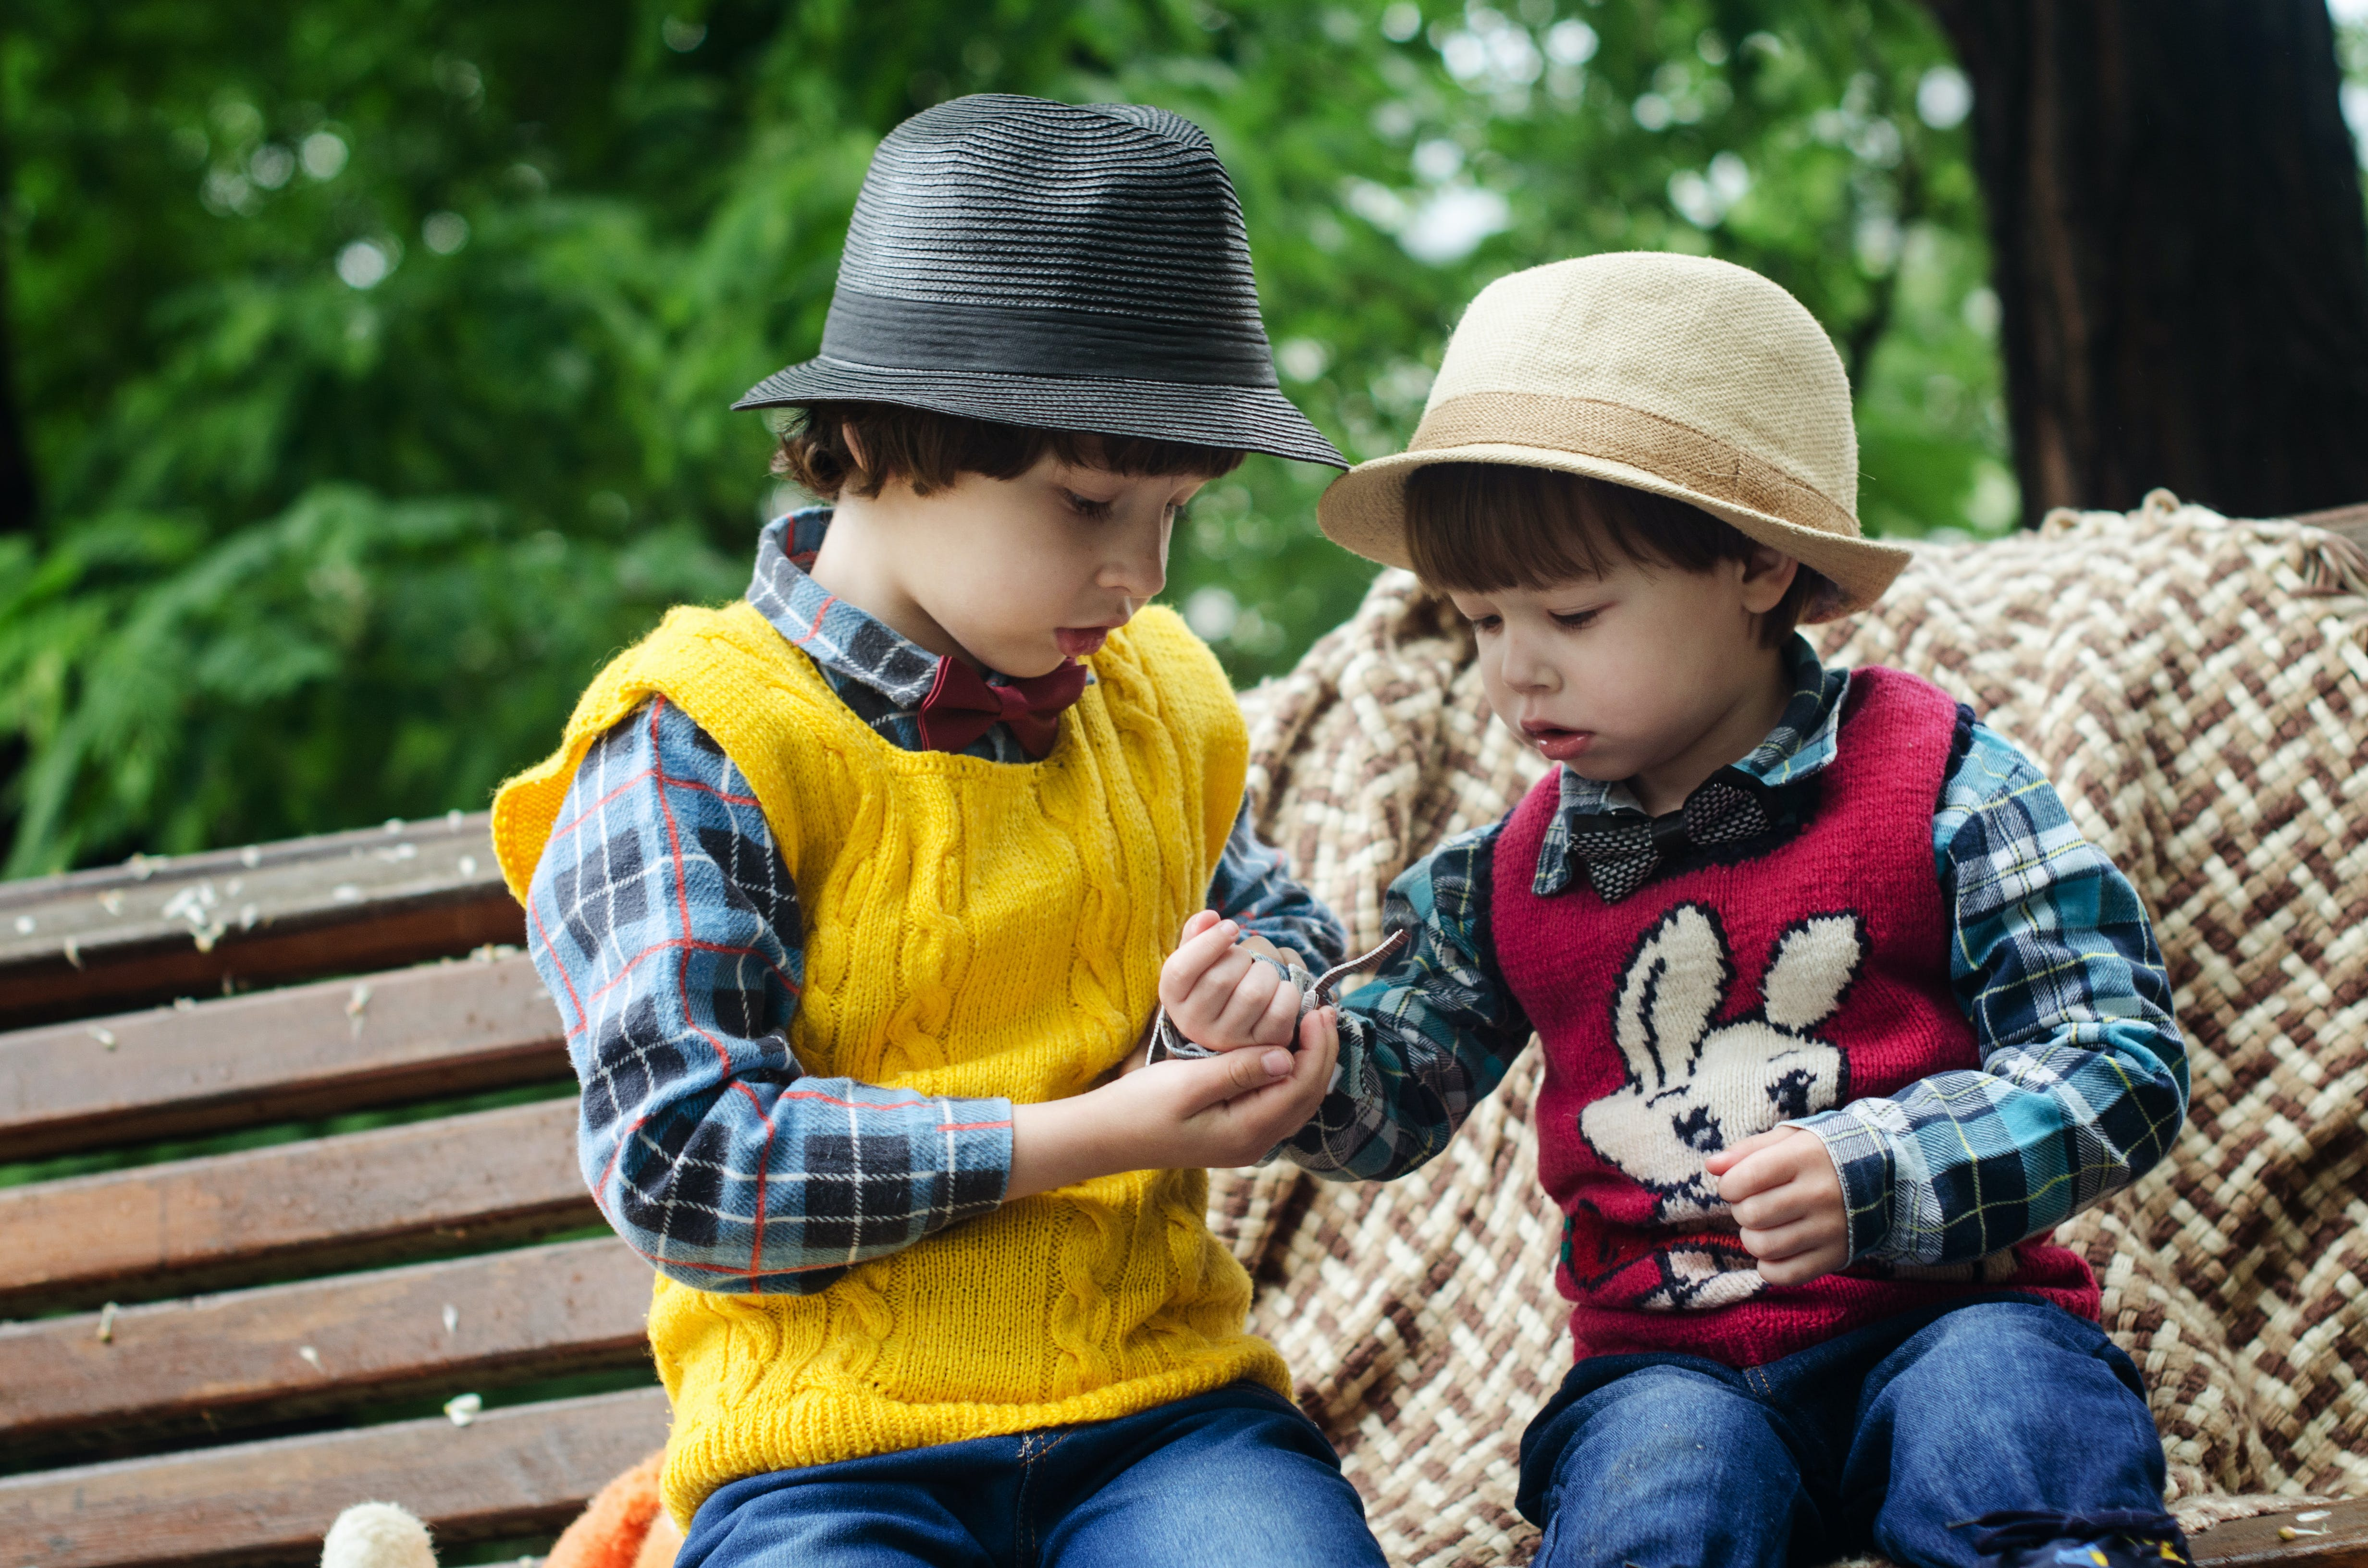 Two Boys Sitting on Bench Wearing Hats and Long-sleeved Shirts